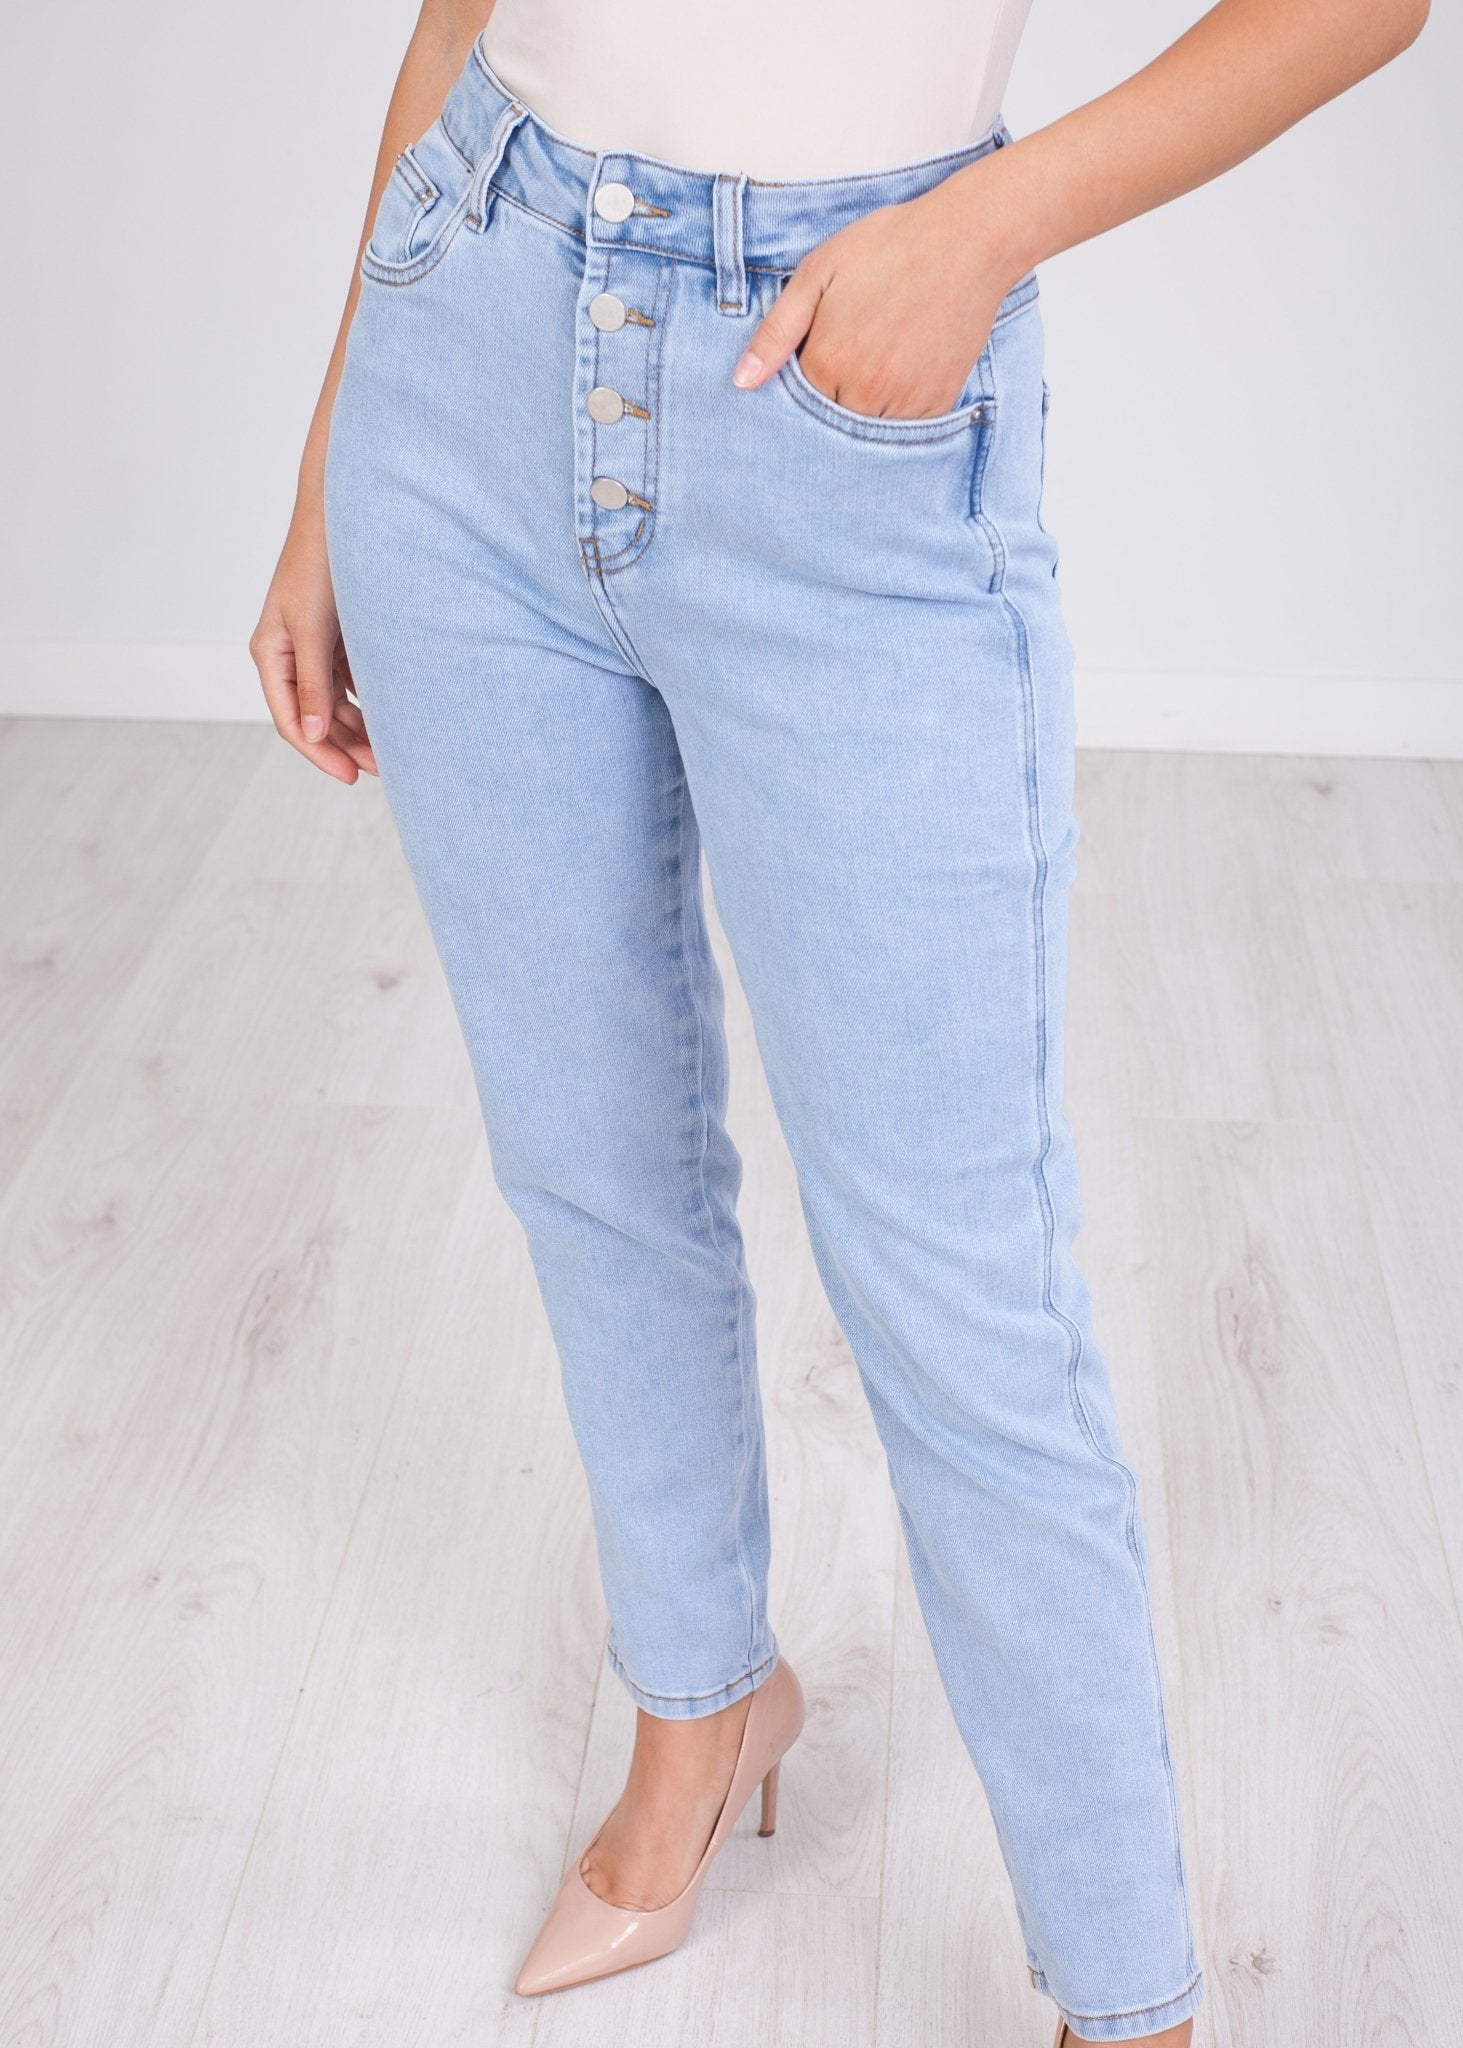 'Caroline' 4 Button Jeans - The Walk in Wardrobe